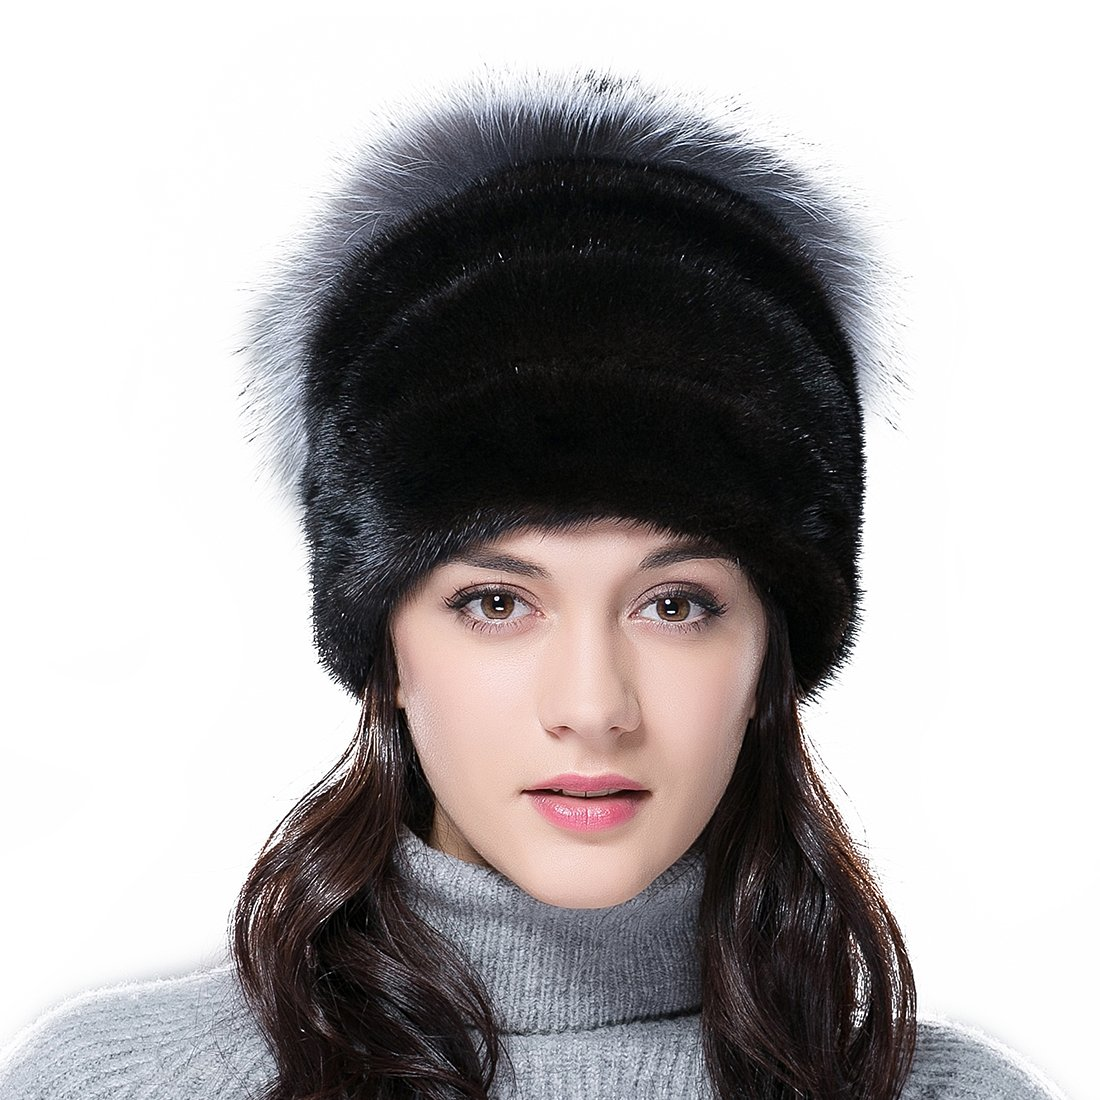 URSFUR Women's Mink Full Fur Skull Caps with Silver Fox Top (One Size Fits All, Black)